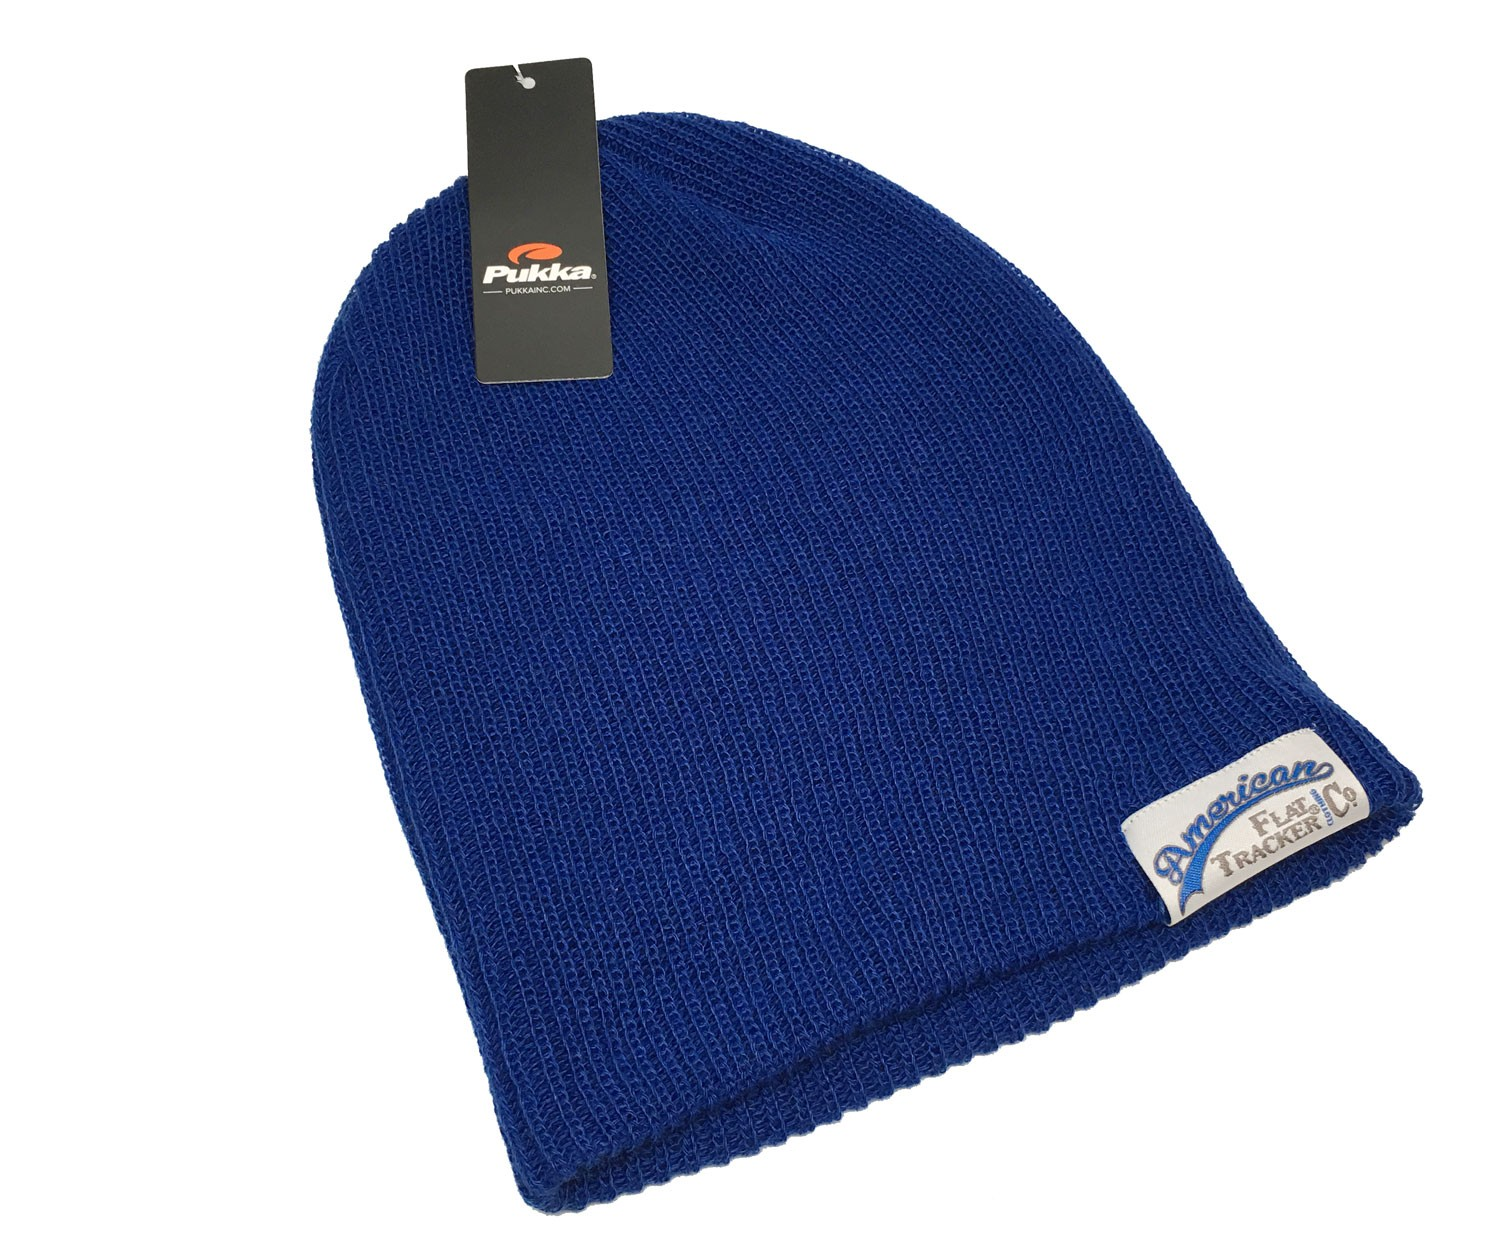 AMERICAN FLAT TRACKER KNIT CAP - BLUE !! SALE !! 67% OFF